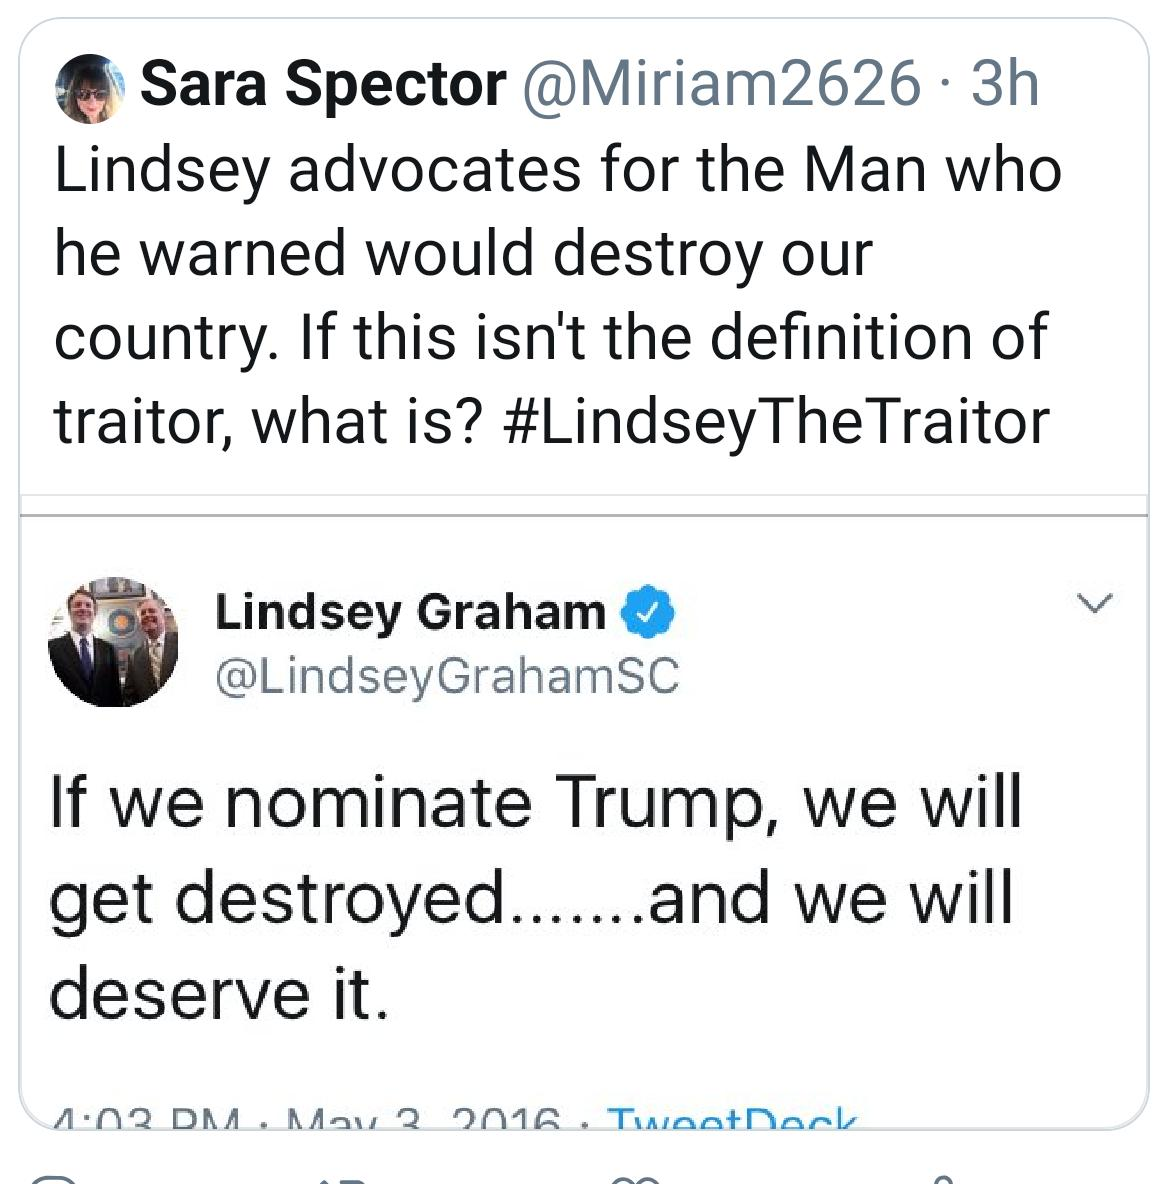 You're having quite the week, @LindseyGrahamSC!  First it was #LindseyGrahamResign then  #LindseyGrahamObstructed then #LindseyTheLapdog and now #LindseyTheTraitor. All fitting.  I'm wondering: will we hear your hypocritical drawl on that Michael Flynn's voicemail? Hmm?<br>http://pic.twitter.com/YaG4orH2LM